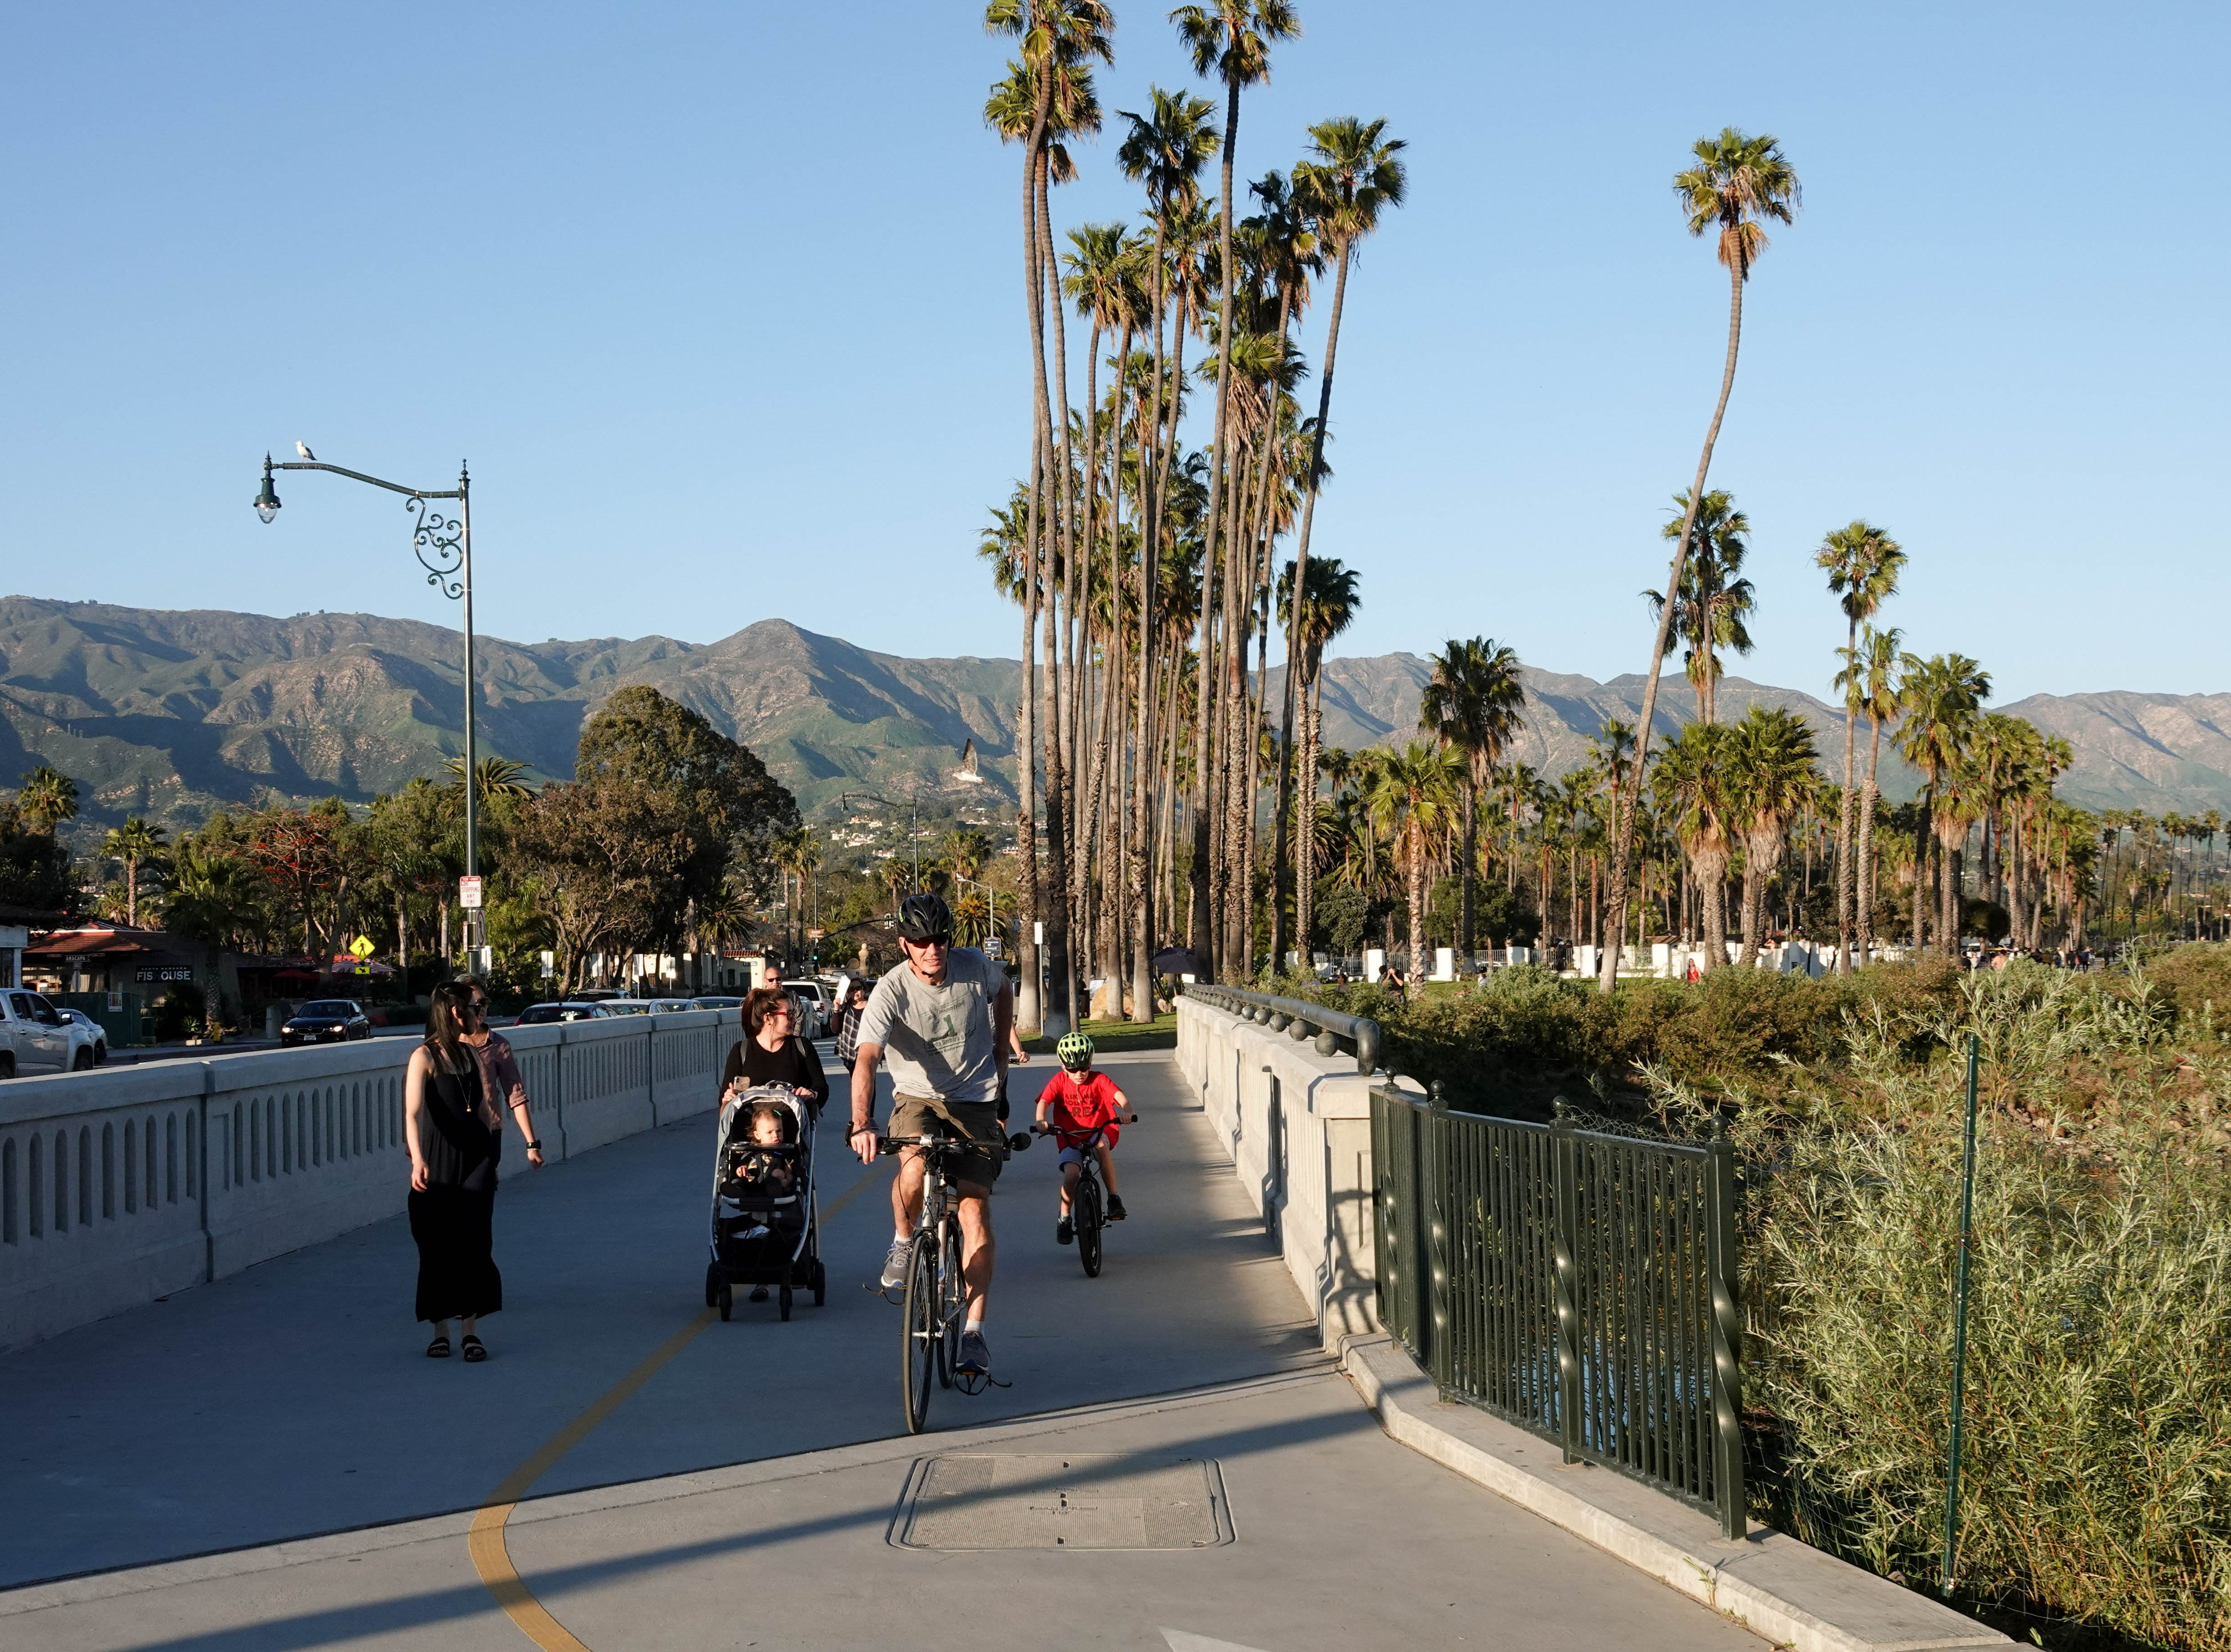 Cycling on the boardwalk in Santa Barbara.